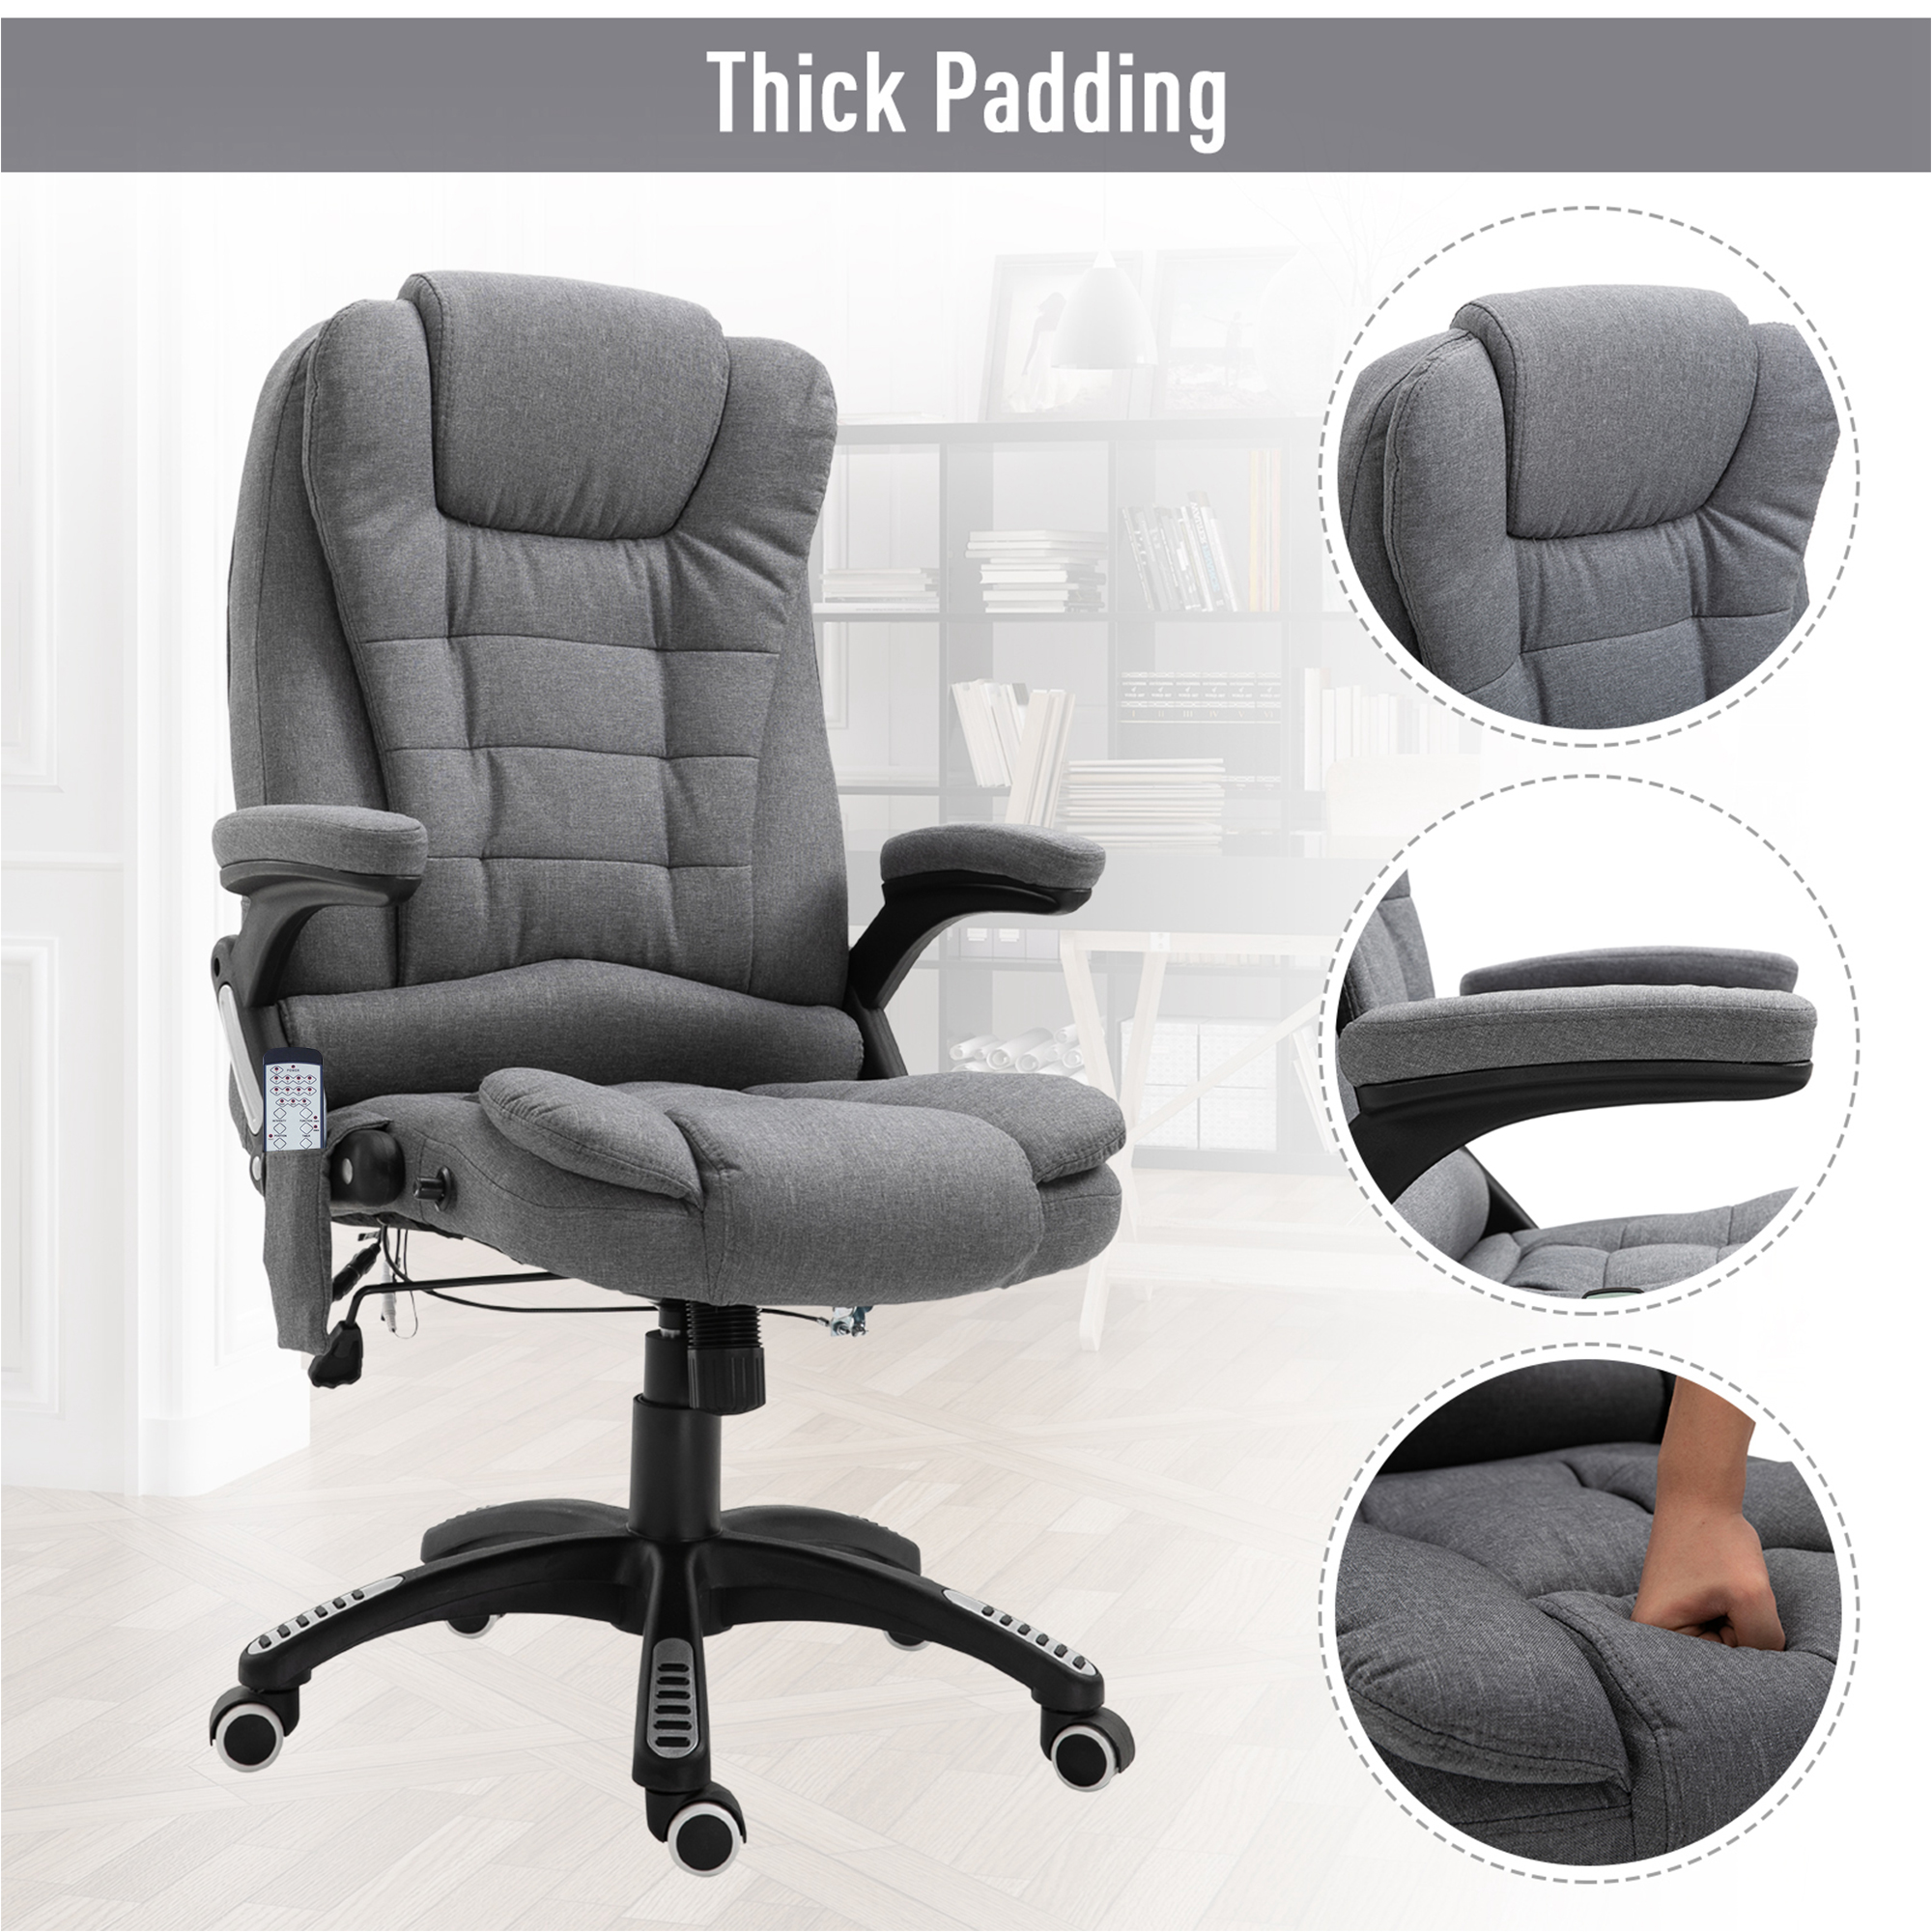 thumbnail 19 - Executive Reclining Chair 130°w/6 Heating Massage Points Relaxing Headrest